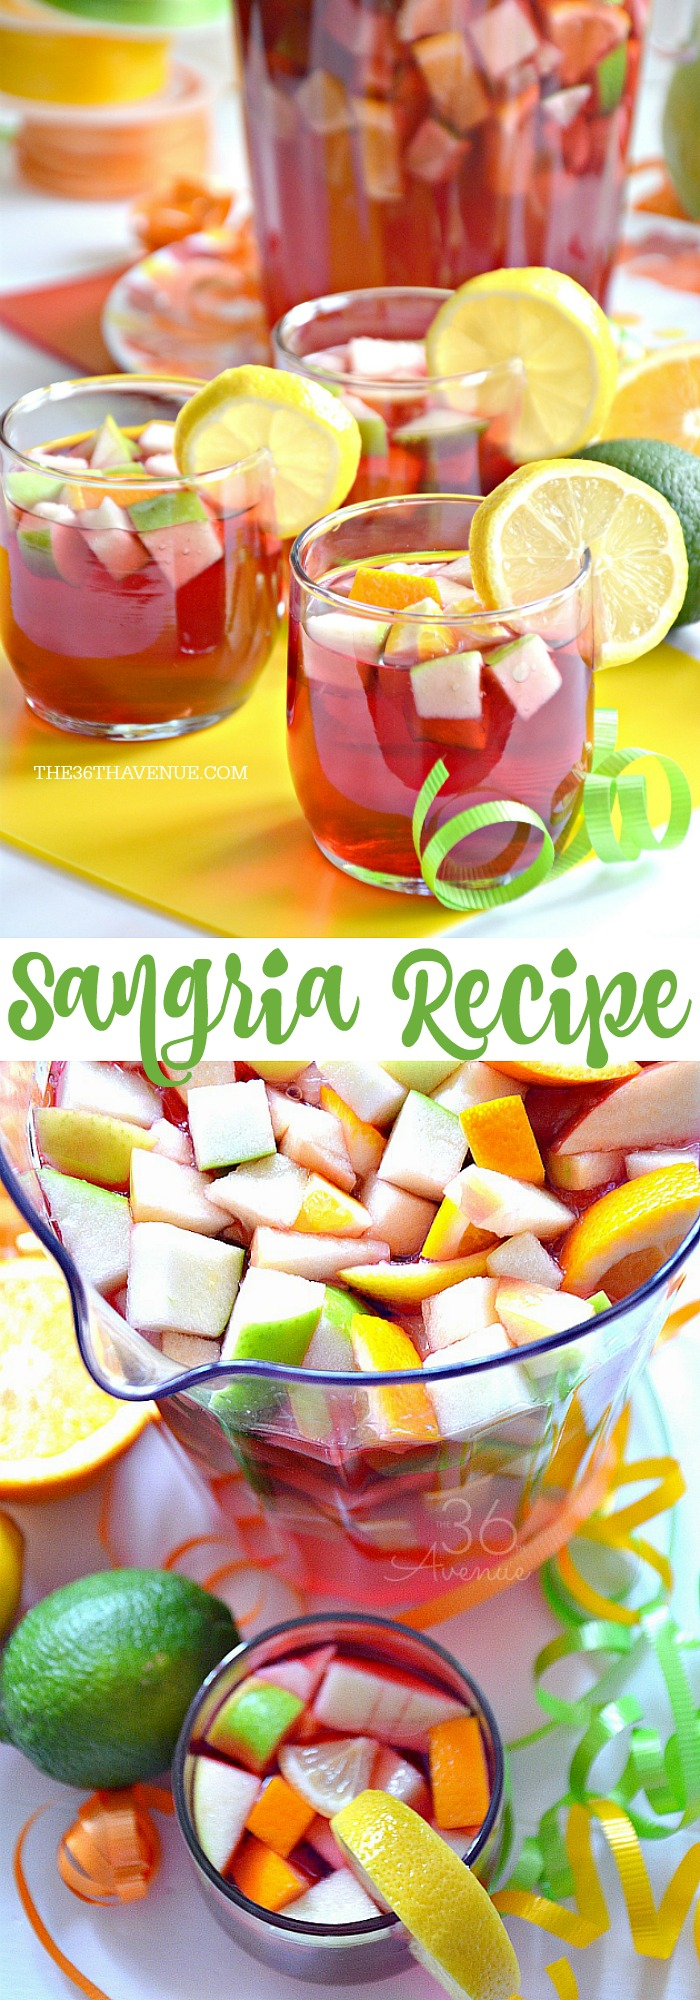 Sangria Recipe Long the36thavenue.com .jpg